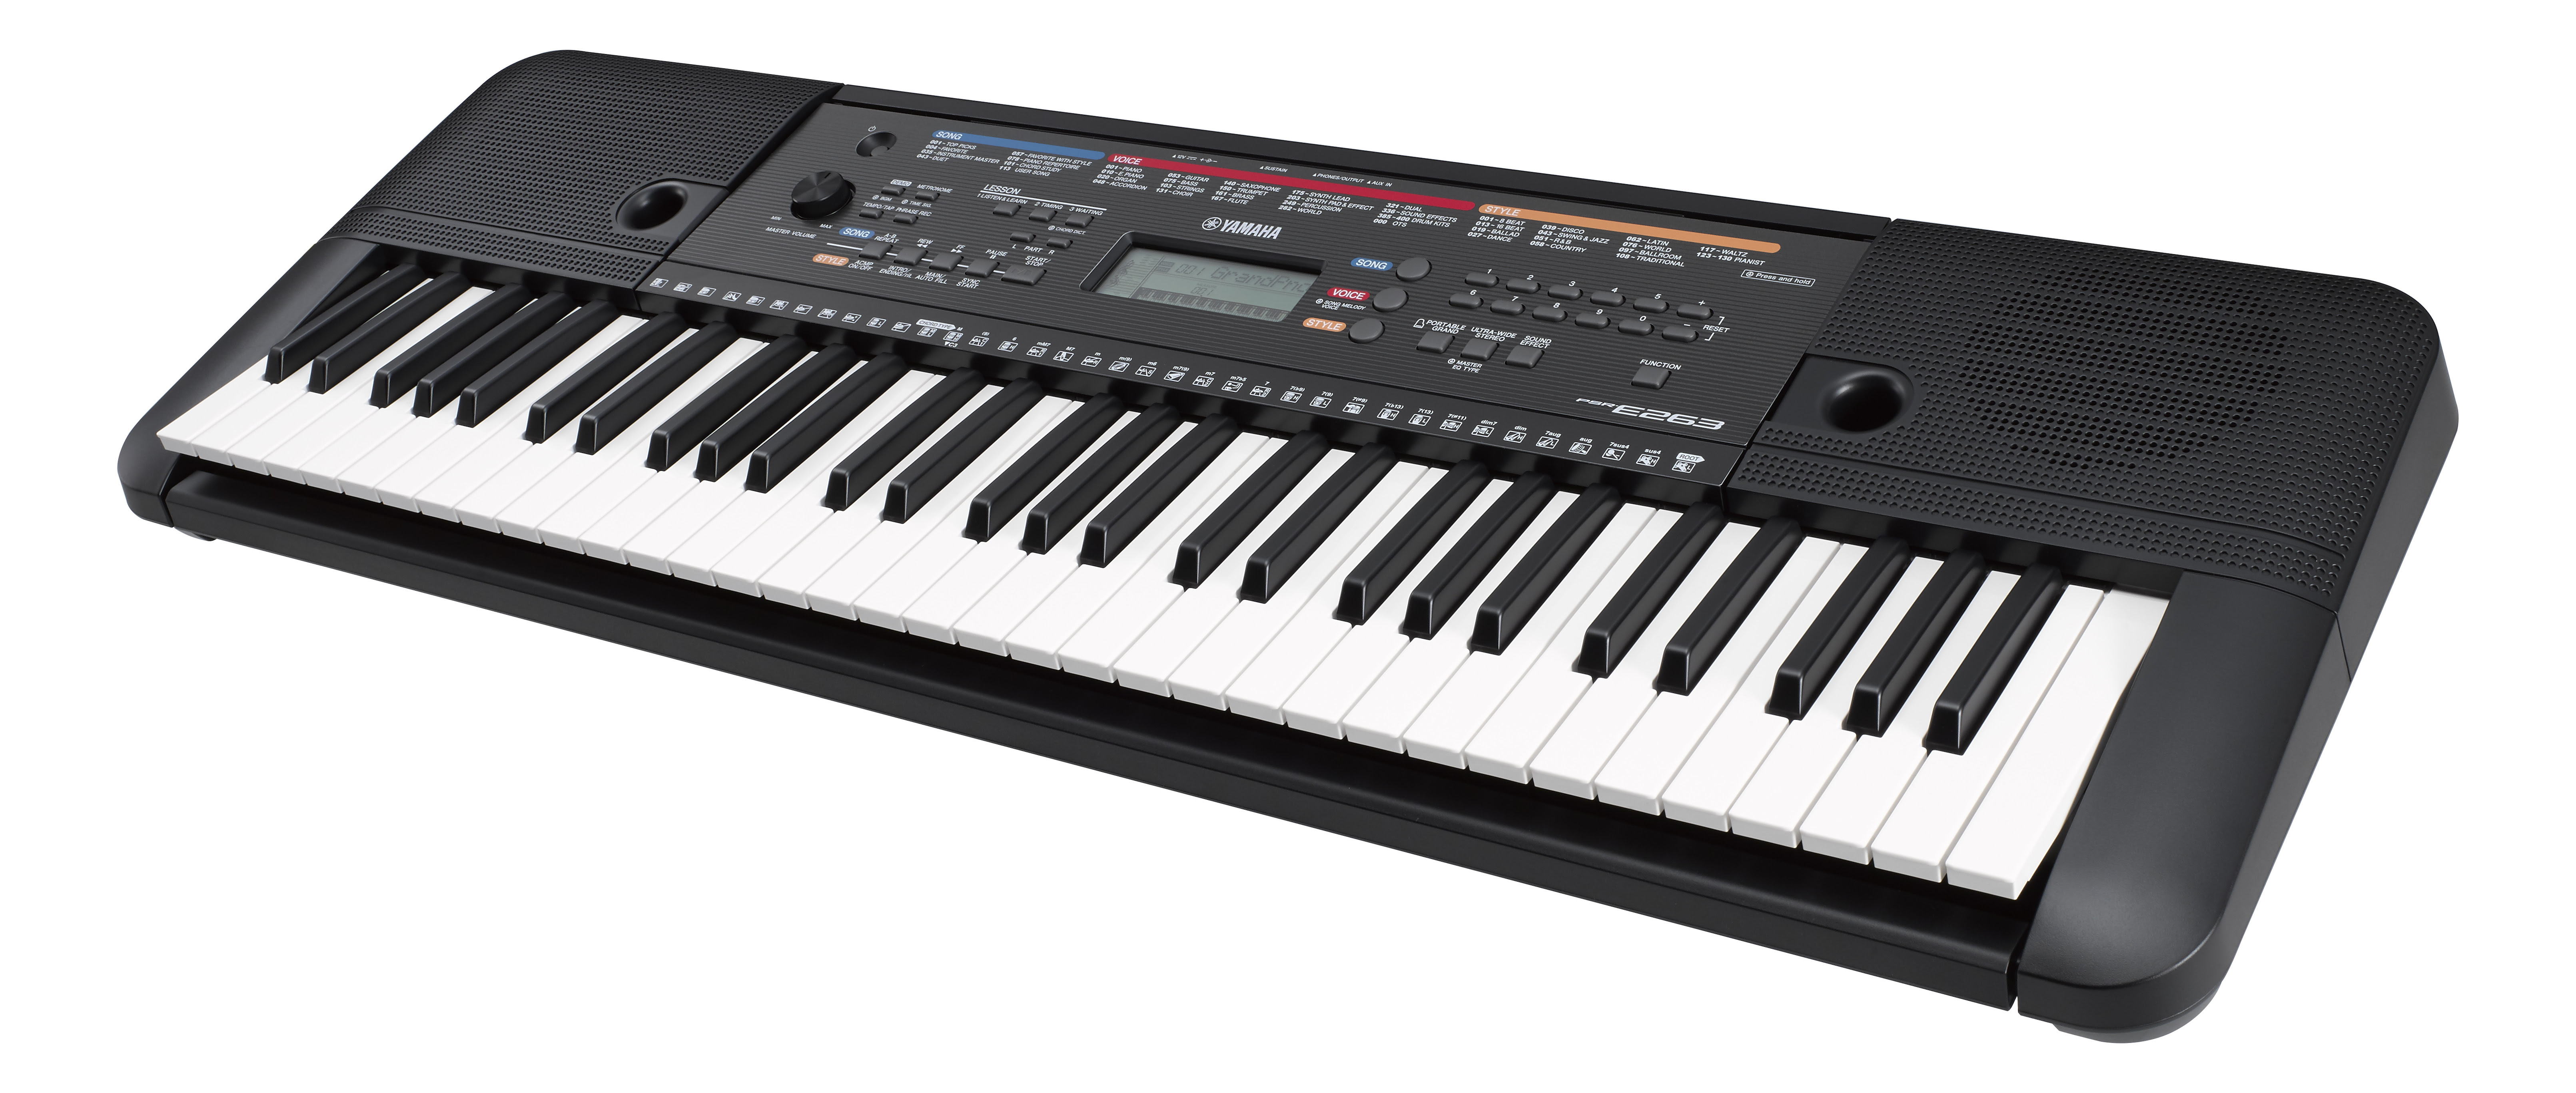 Yamaha Psr E263 And Psr E363 Are Ideal First Keyboards For